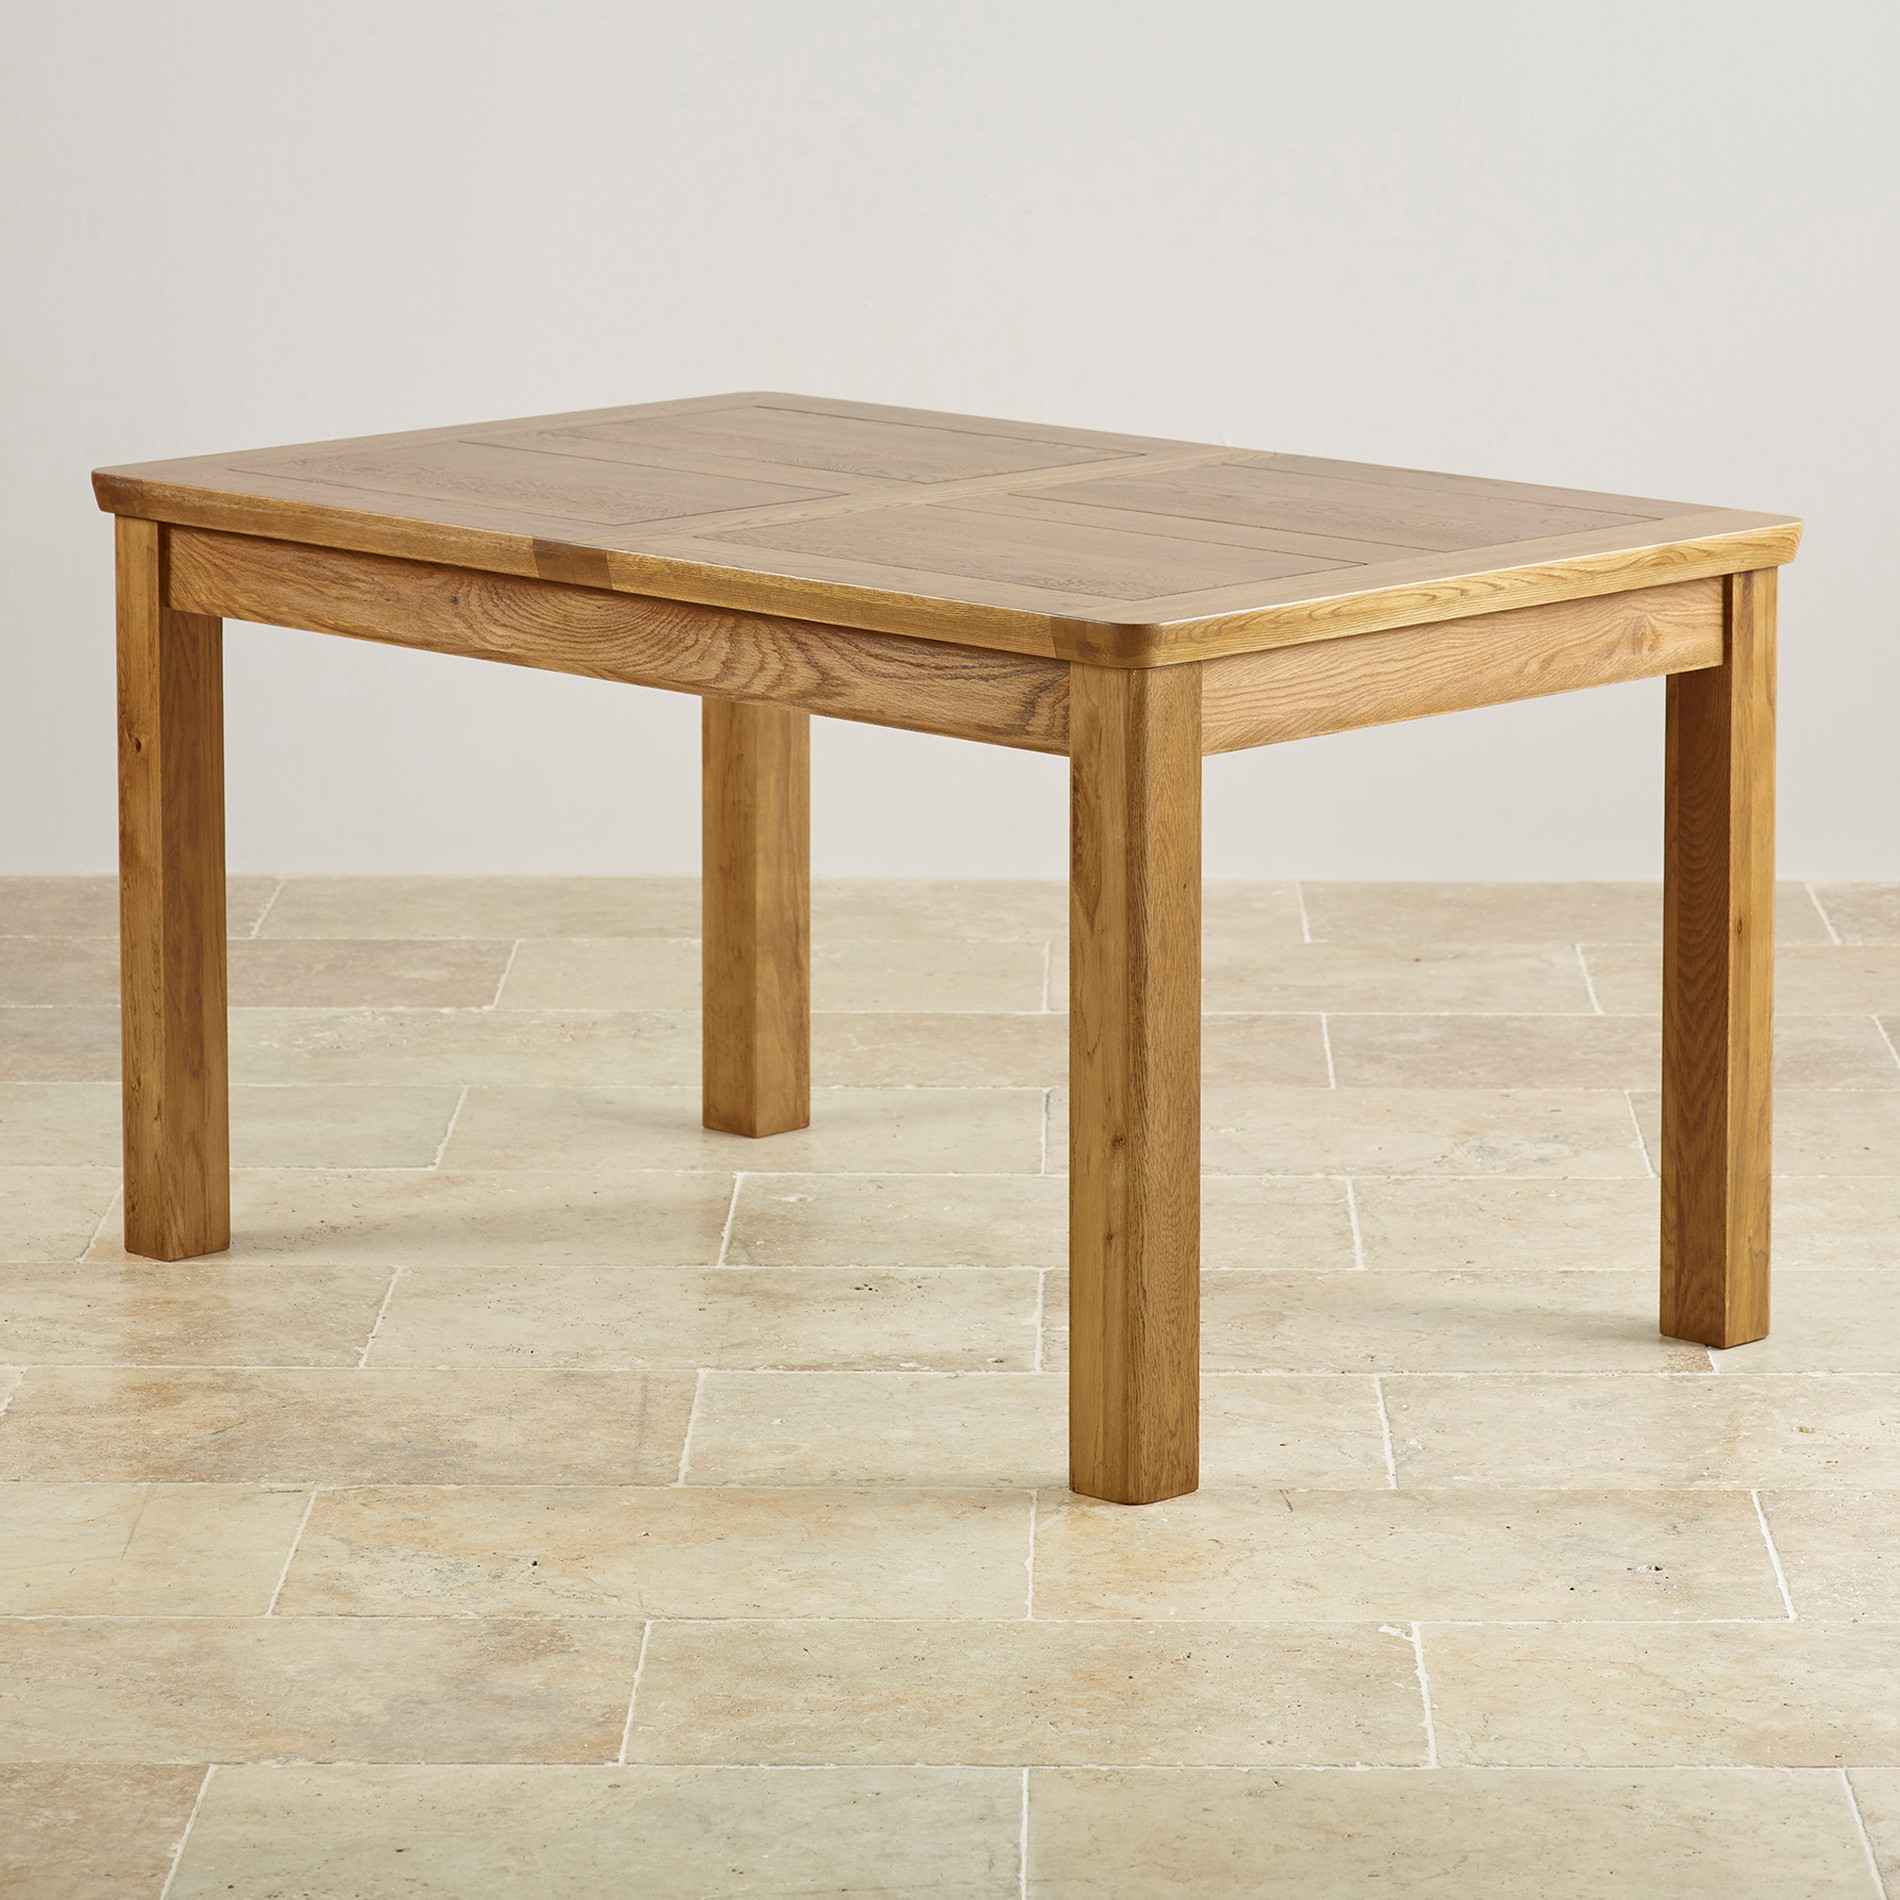 oak table stunning oak extending table 8 modern dining room sets marble small GRYHTWD